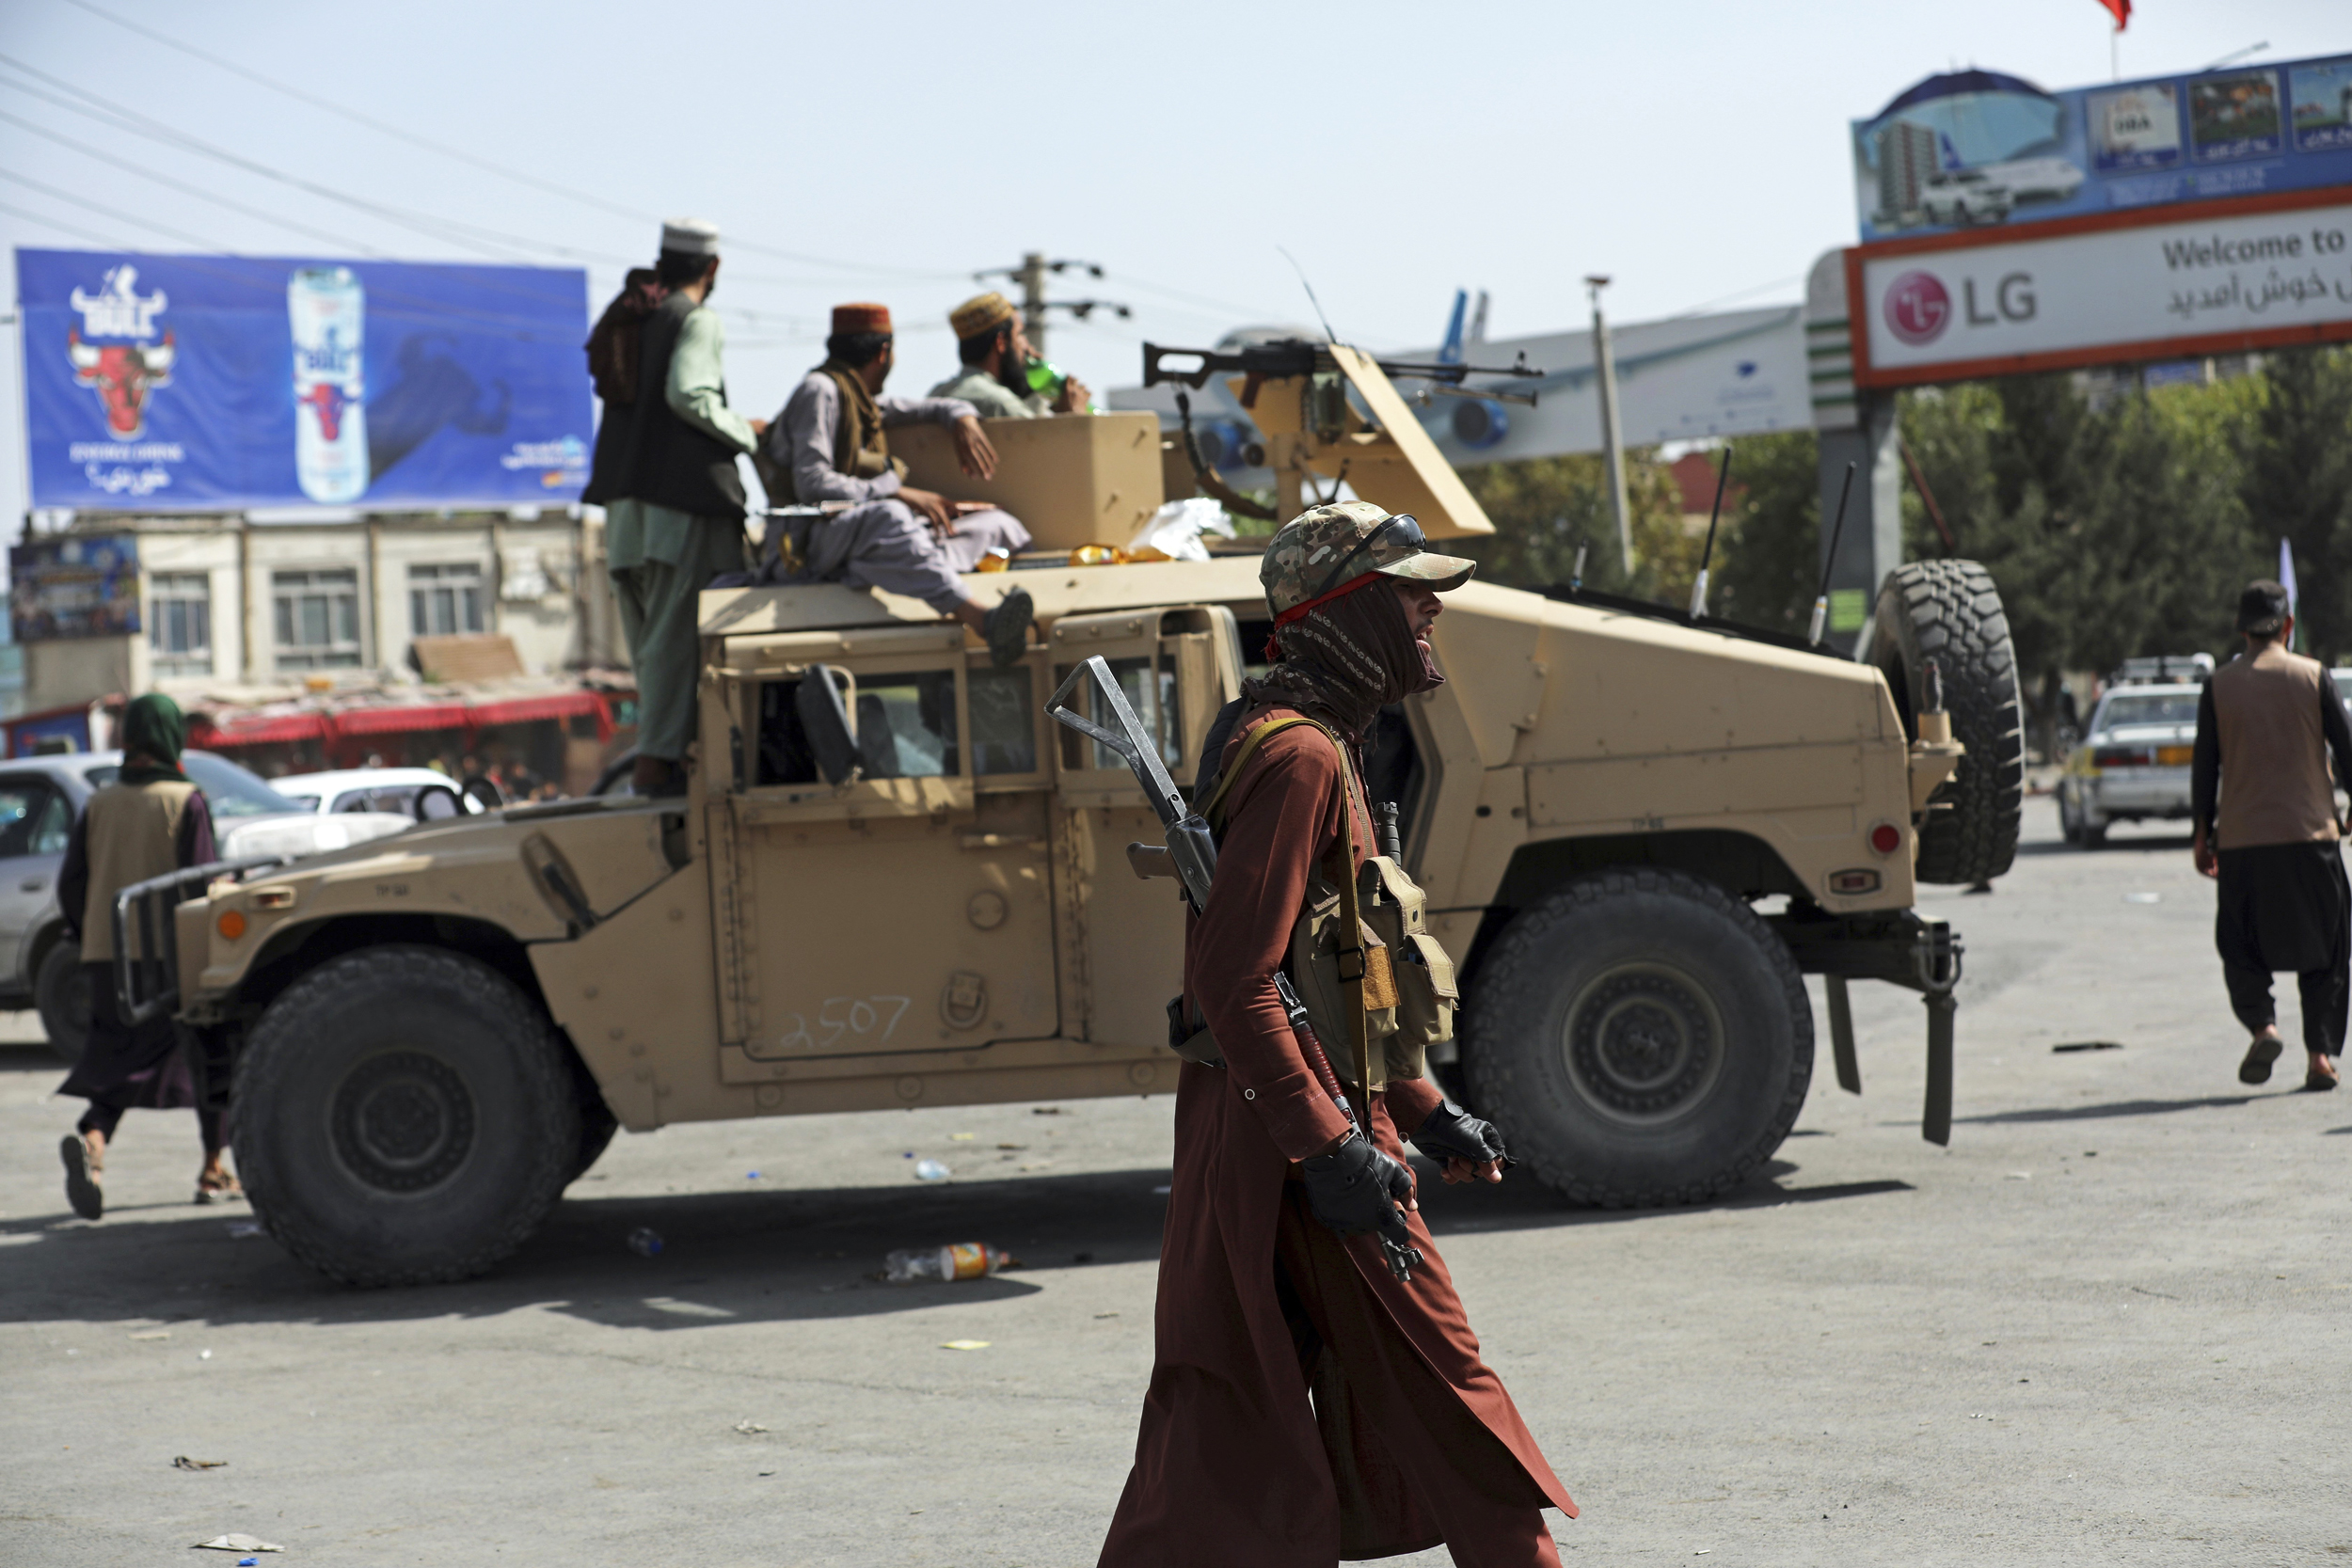 Taliban's lightning-fast takeover of Afghanistan raises big questions for U.S. security chiefs